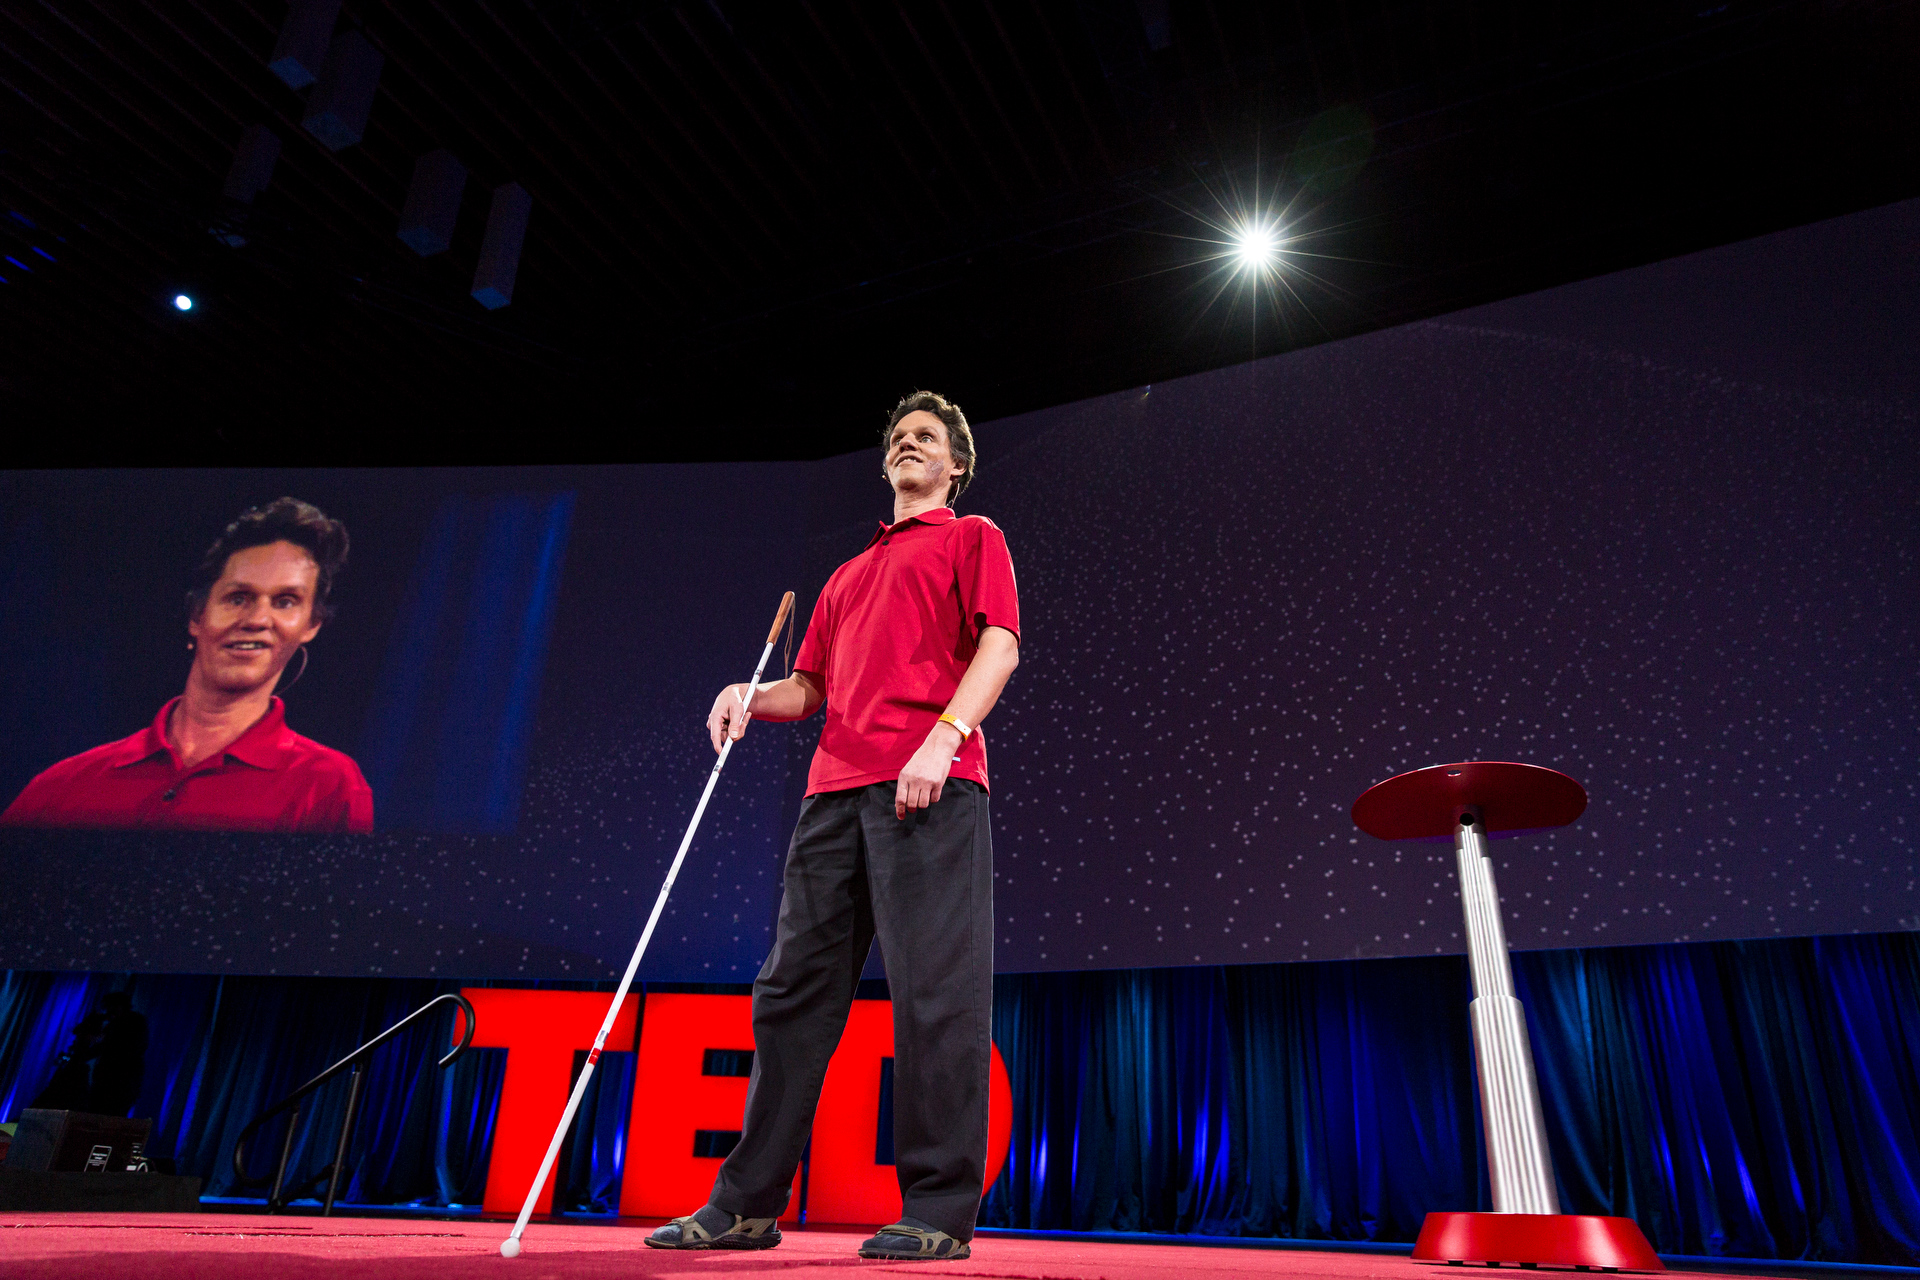 Daniel Kish speaks at TED2015 - Truth and Dare, Session 2. Photo: Bret Hartman/TED